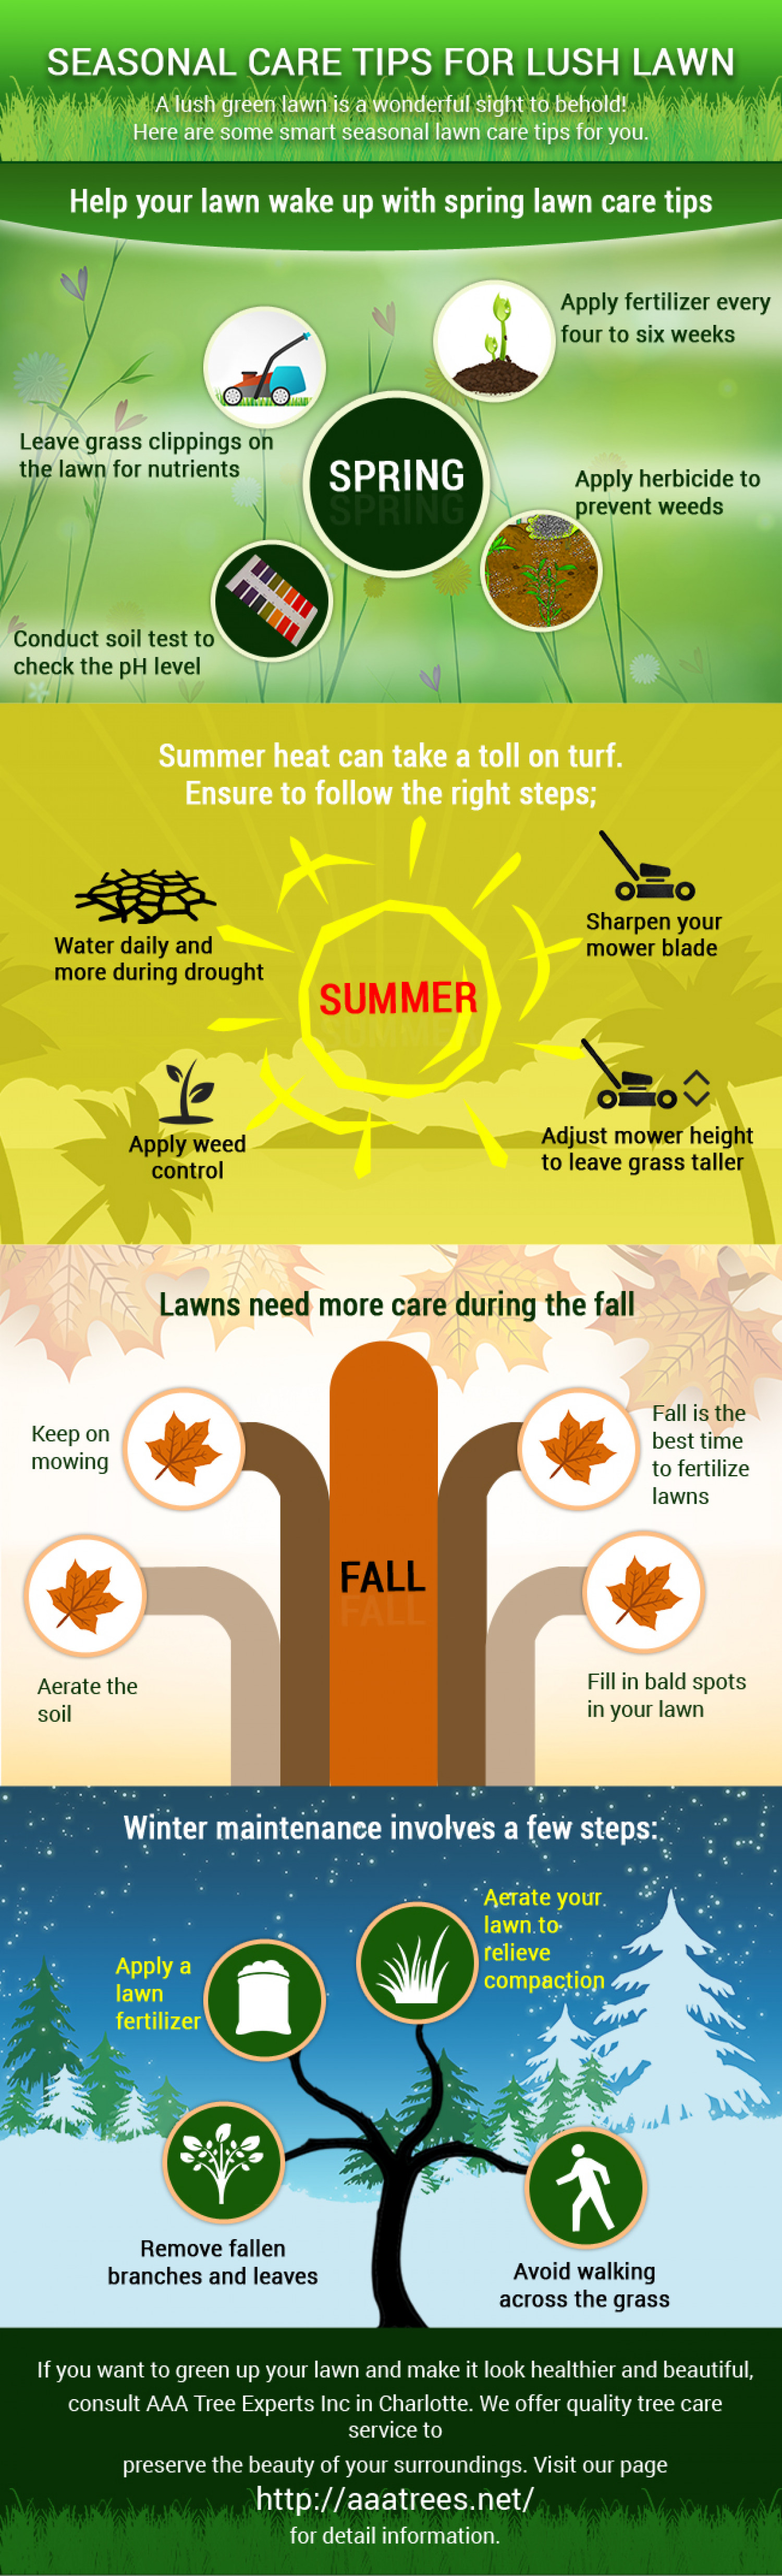 Seasonal Care Tips for Lush Lawn Infographic